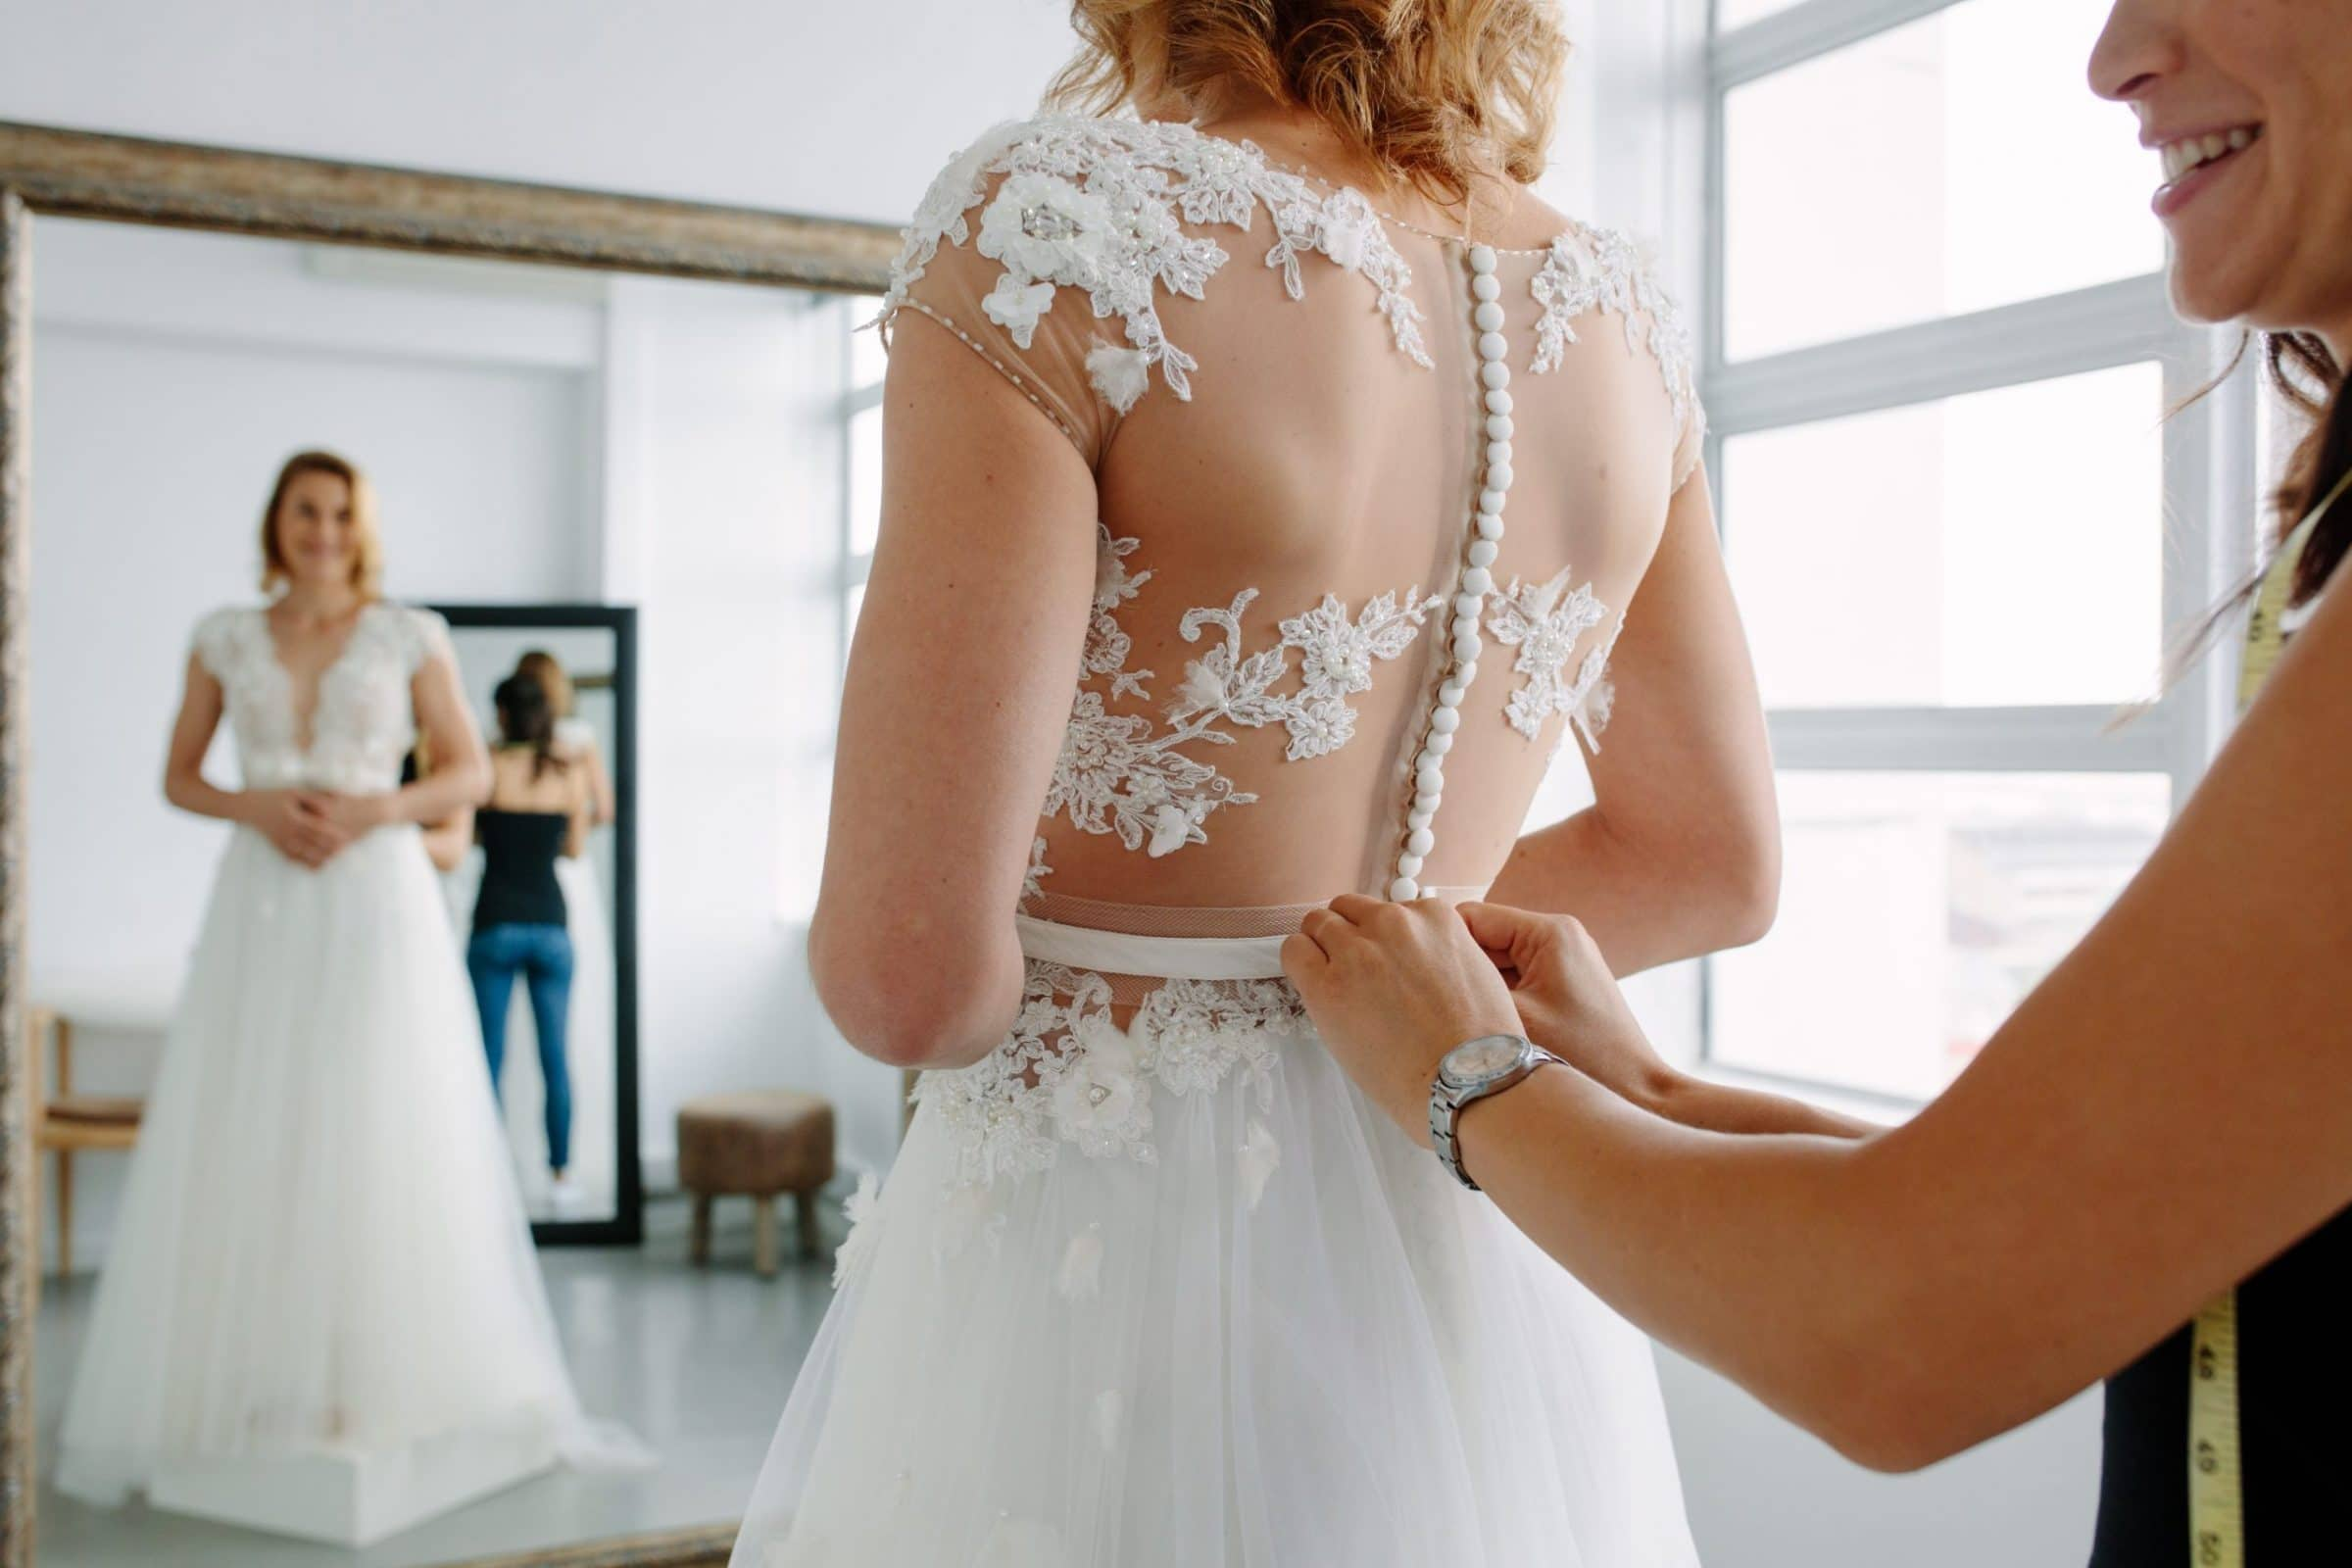 What to Bring to Your Bridal Dress Shopping Appointment